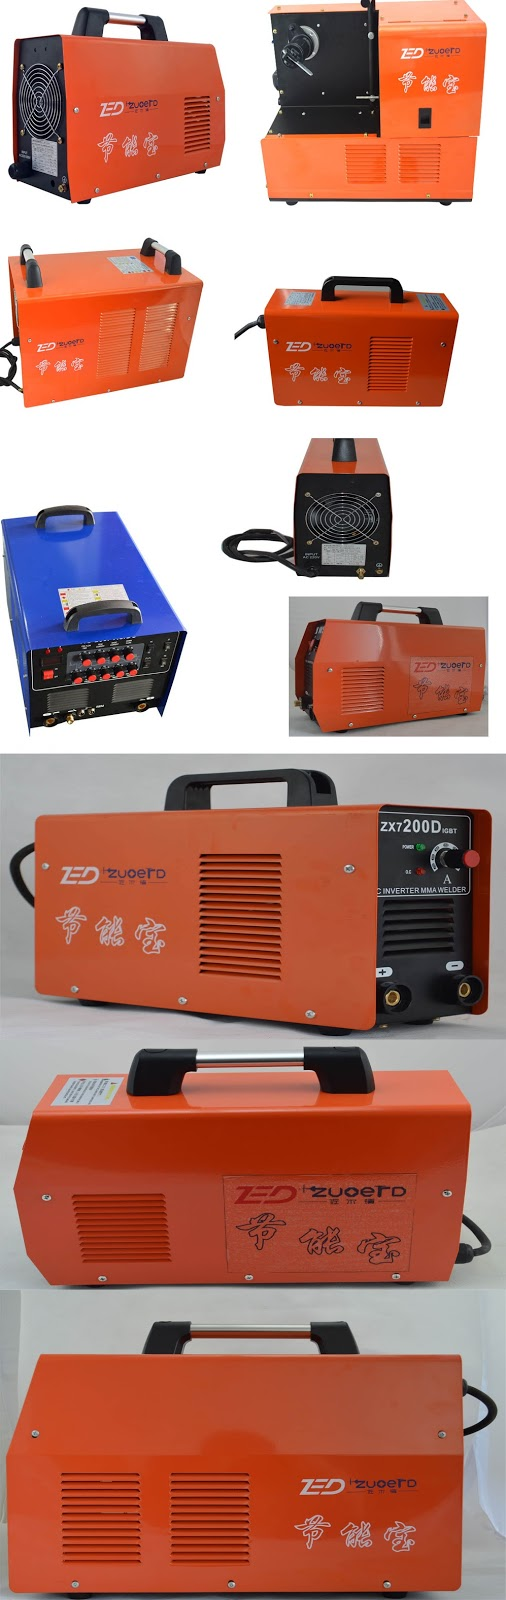 small resolution of mos dc inverter tig welder igbt gas shielded welding machine mos inverter air plasma cutting machine mos dc inverter manual arc welding machine